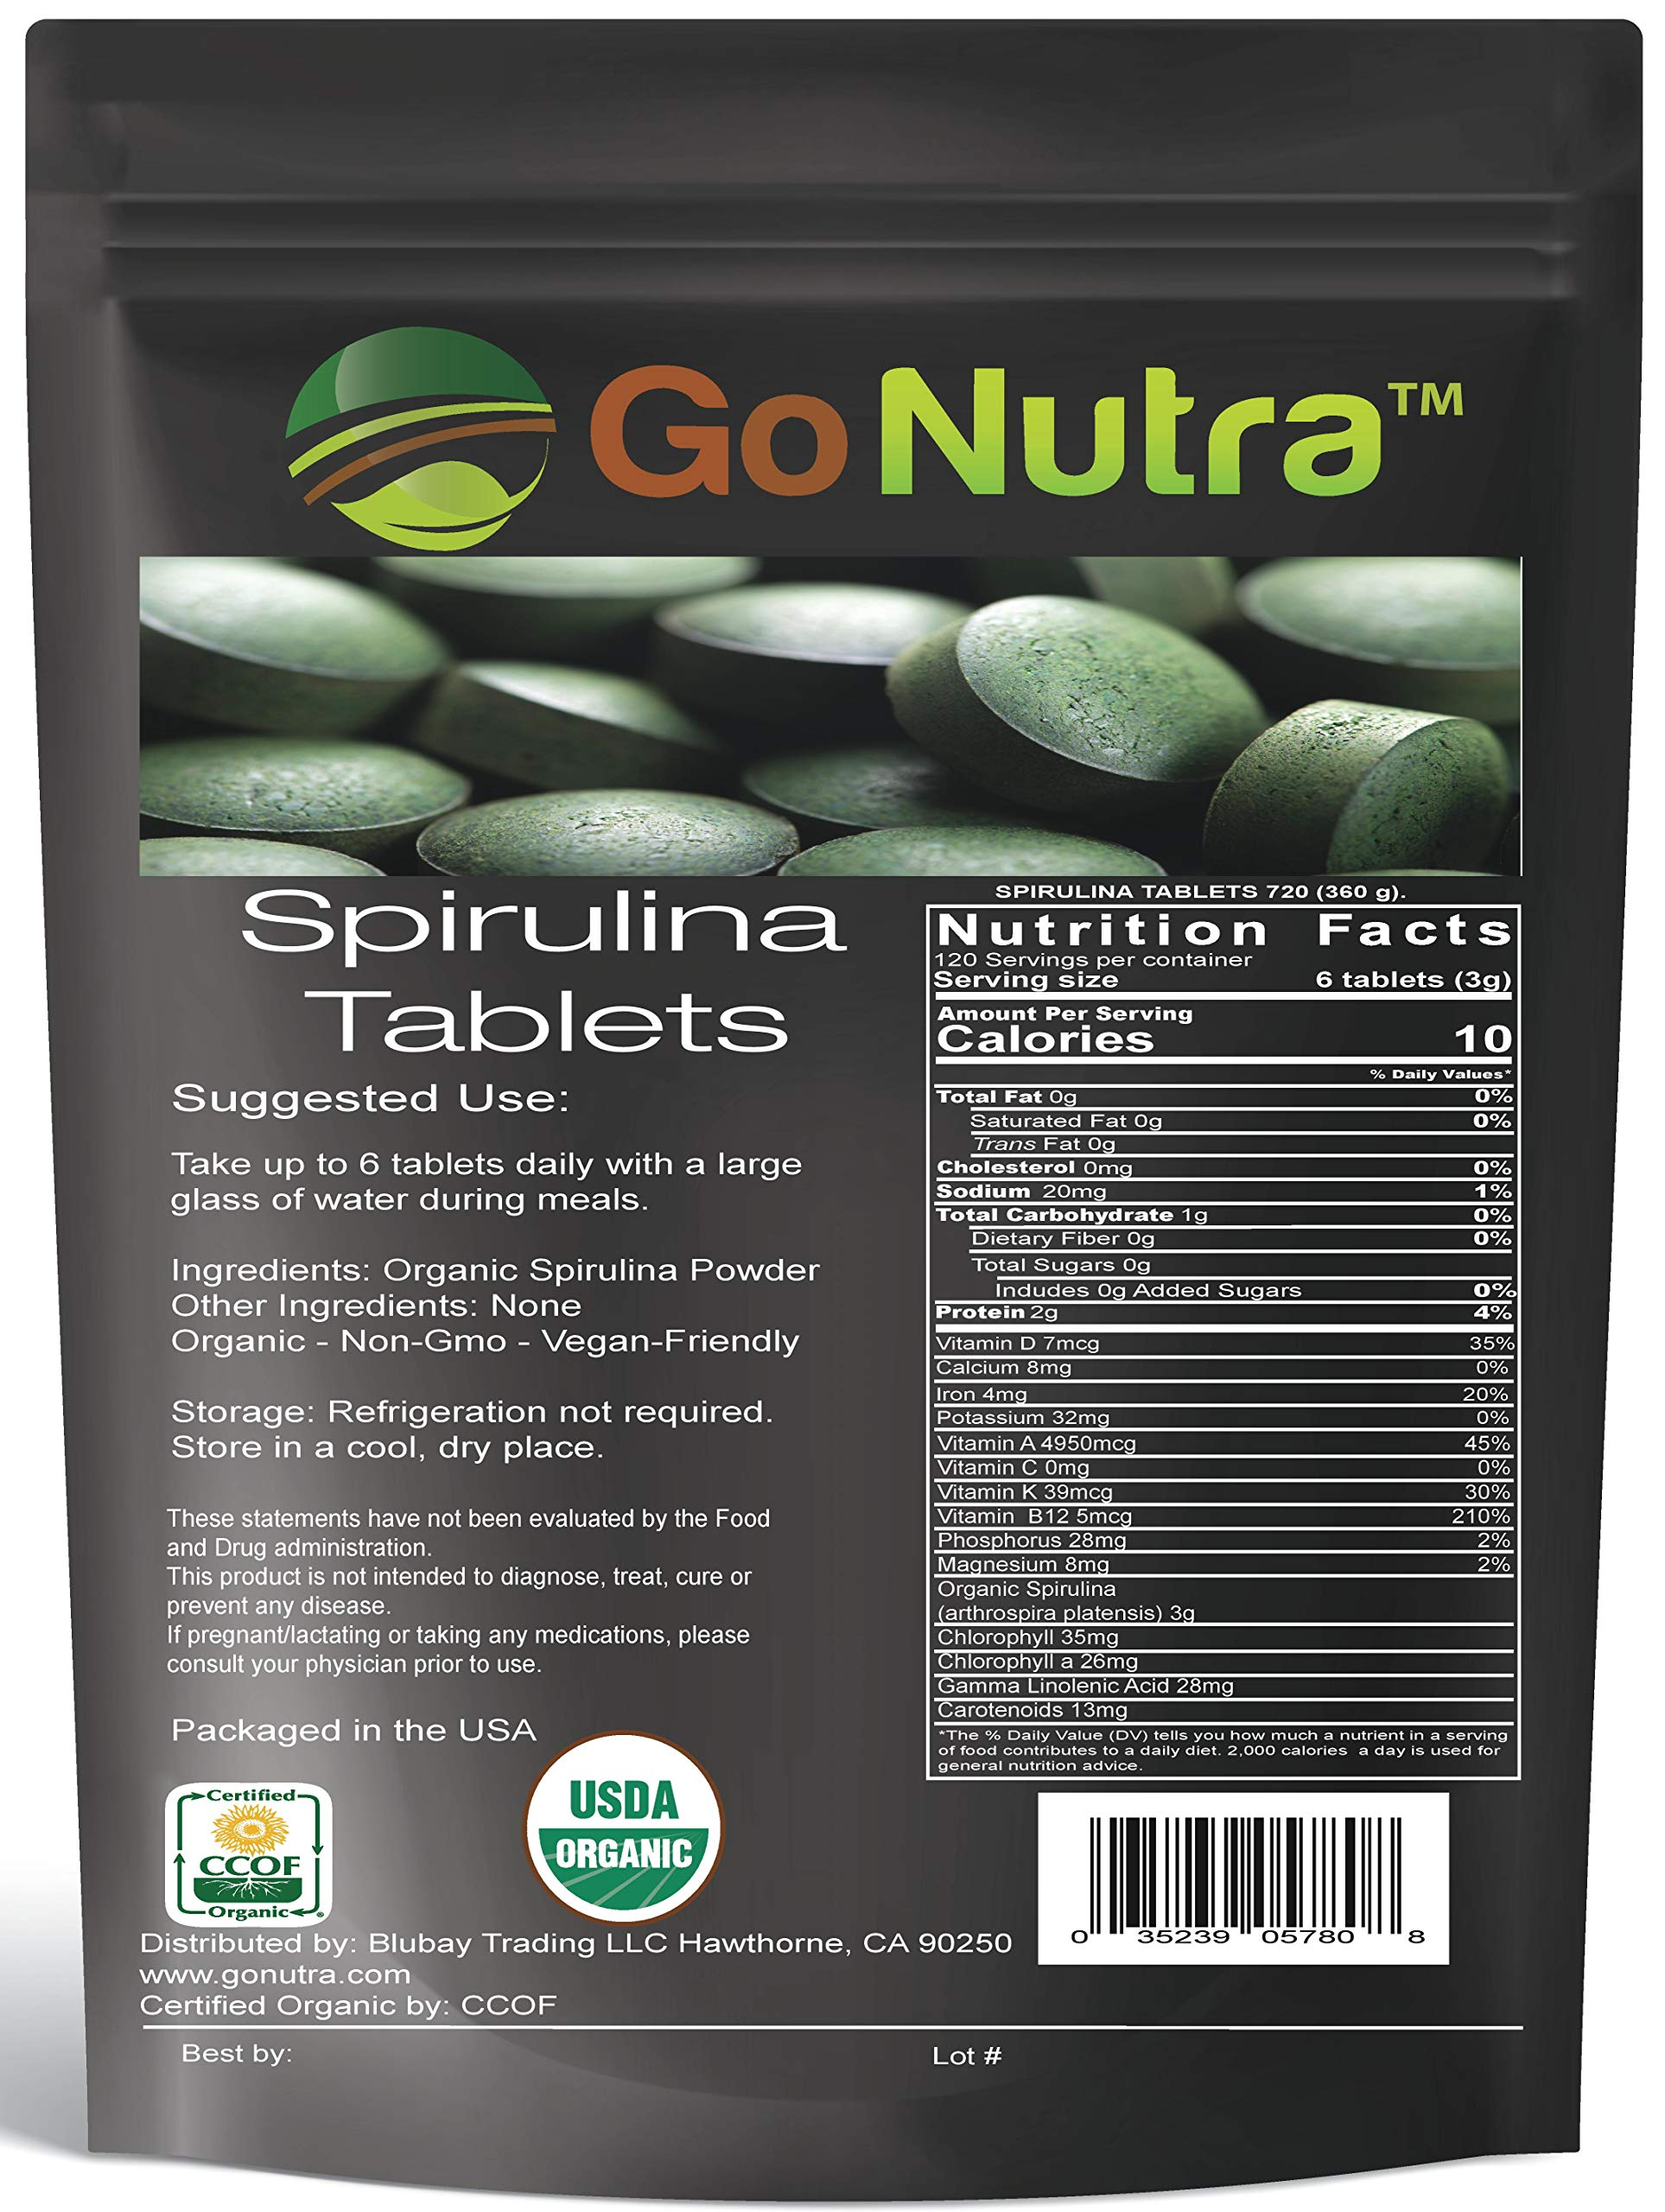 Organic Spirulina Tablets, 3000mg Per Serving, 720 Tablets - Superfoods Rich in Minerals, Vitamins, Chlorophyll, Amino Acids, Fatty Acids, Fiber & Proteins. Non-Irradiated, Non-GMO & Vegan